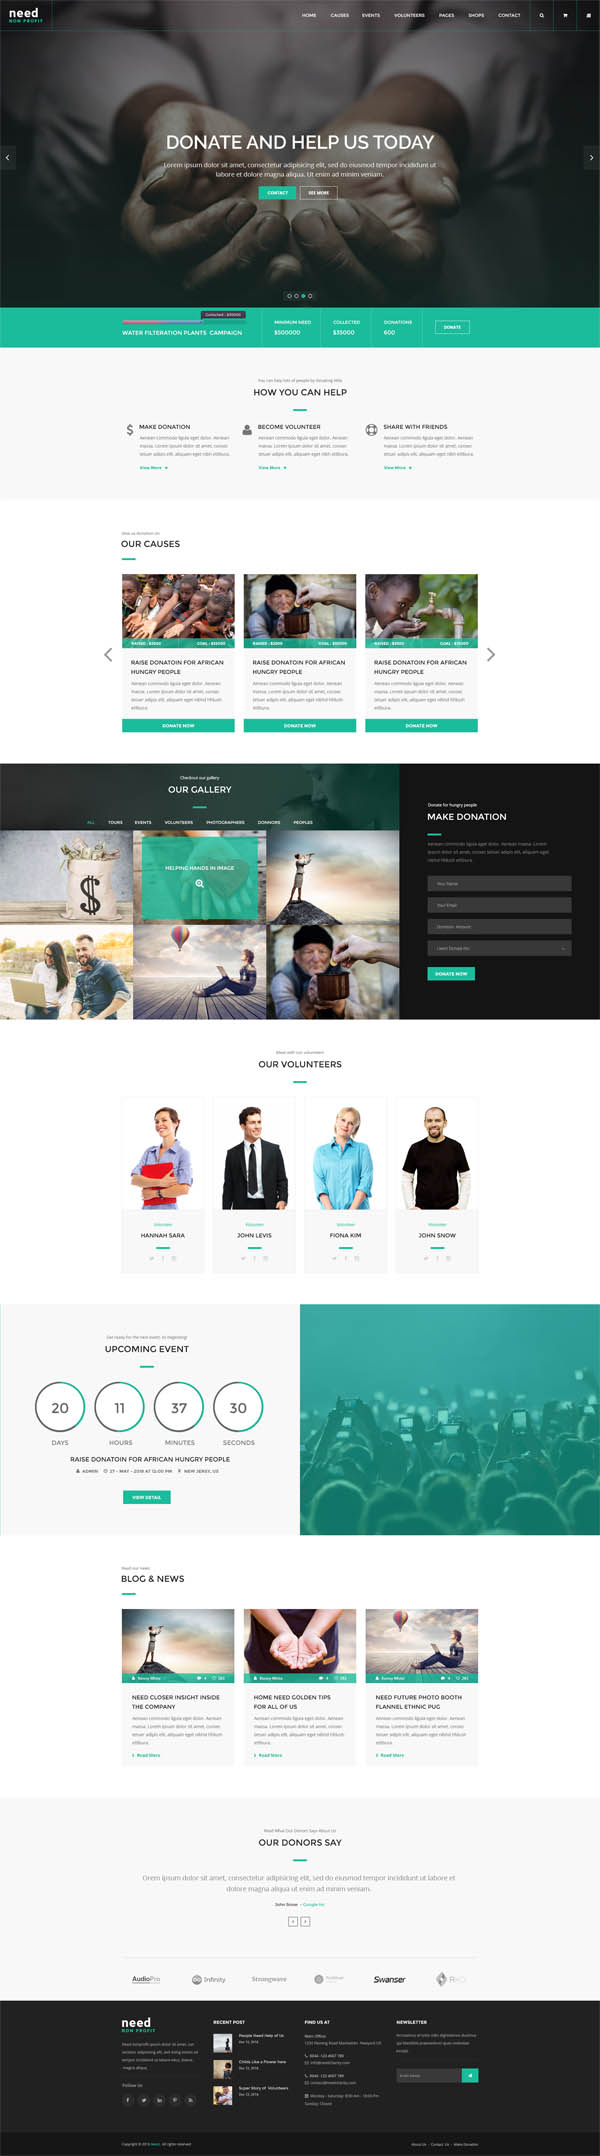 Need - Nonprofit Charity Donation HTML Template